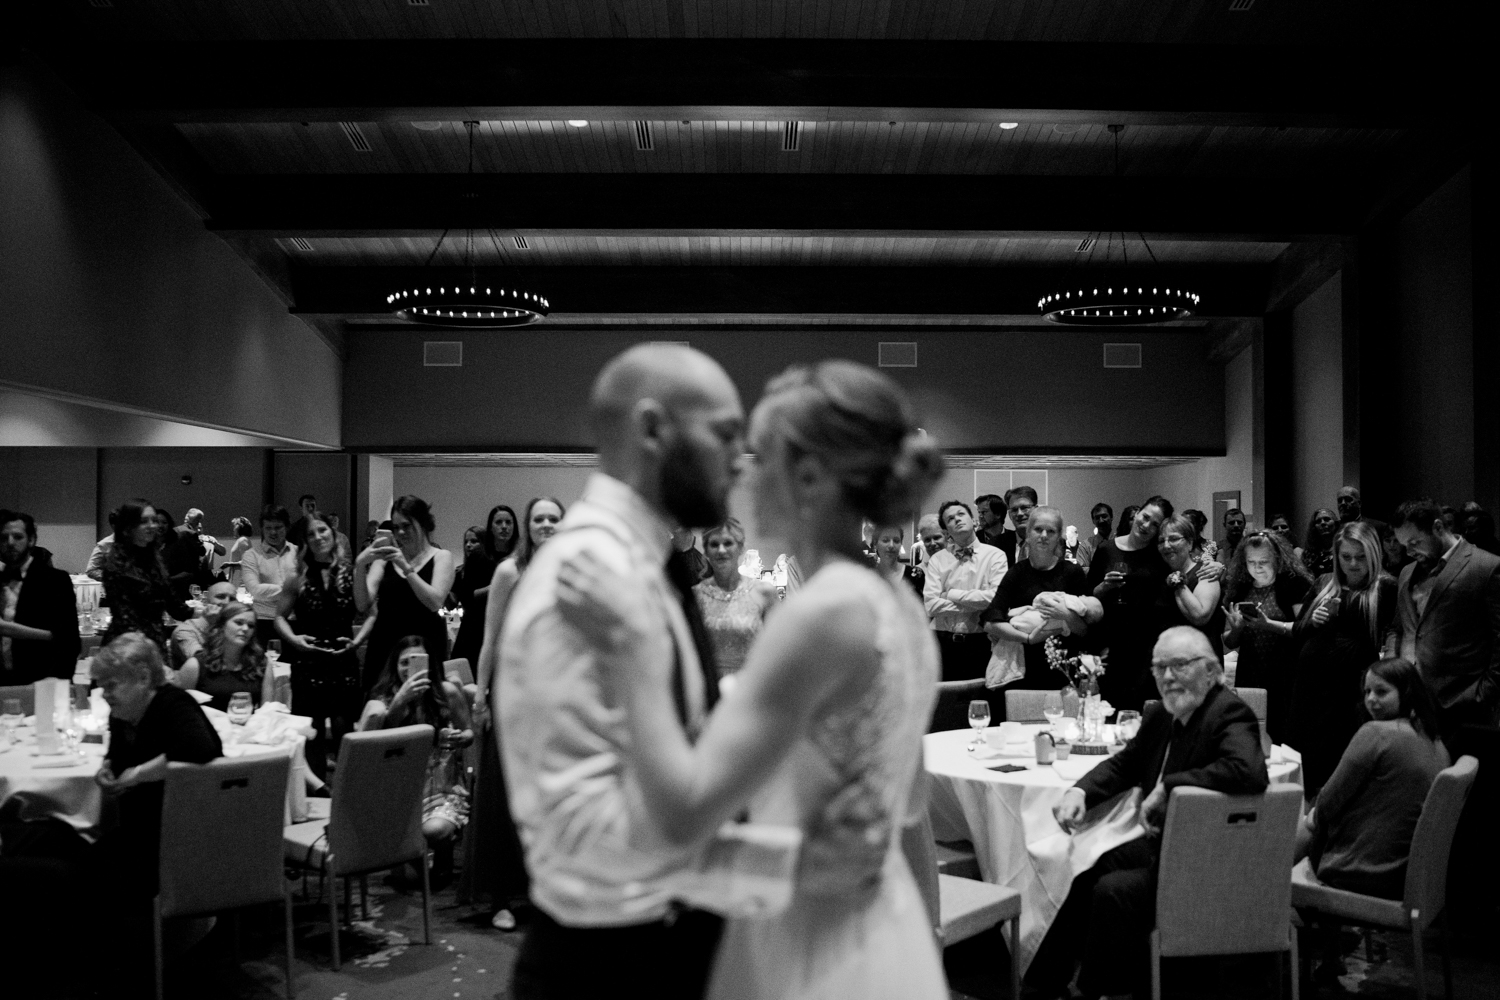 Canmore-Wedding-Photographer-90.jpg